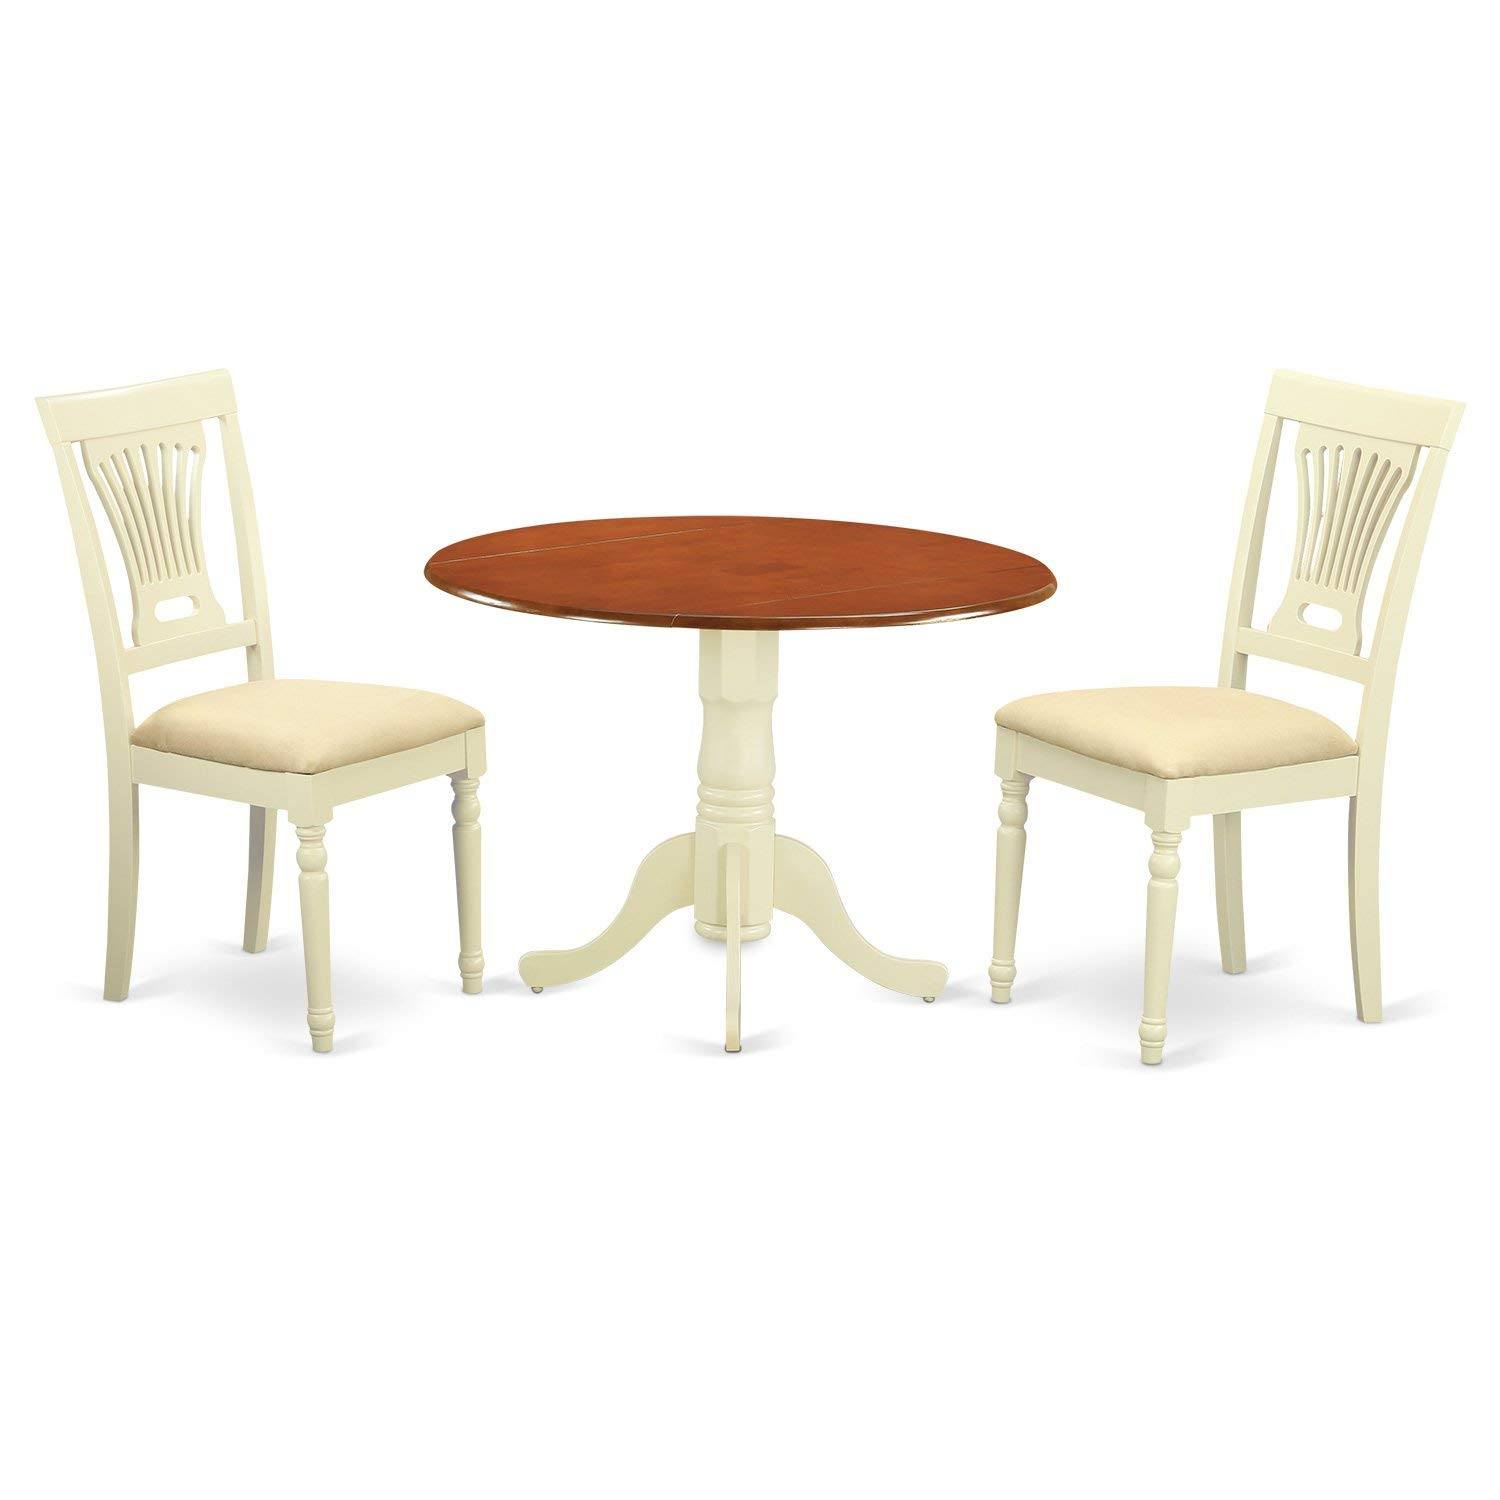 East West Furniture DLPL3-BMK-C 3 Piece Dining Table and 2 Wooden Kitchen Chairs Dublin Set, Buttermilk/Cherry Finish